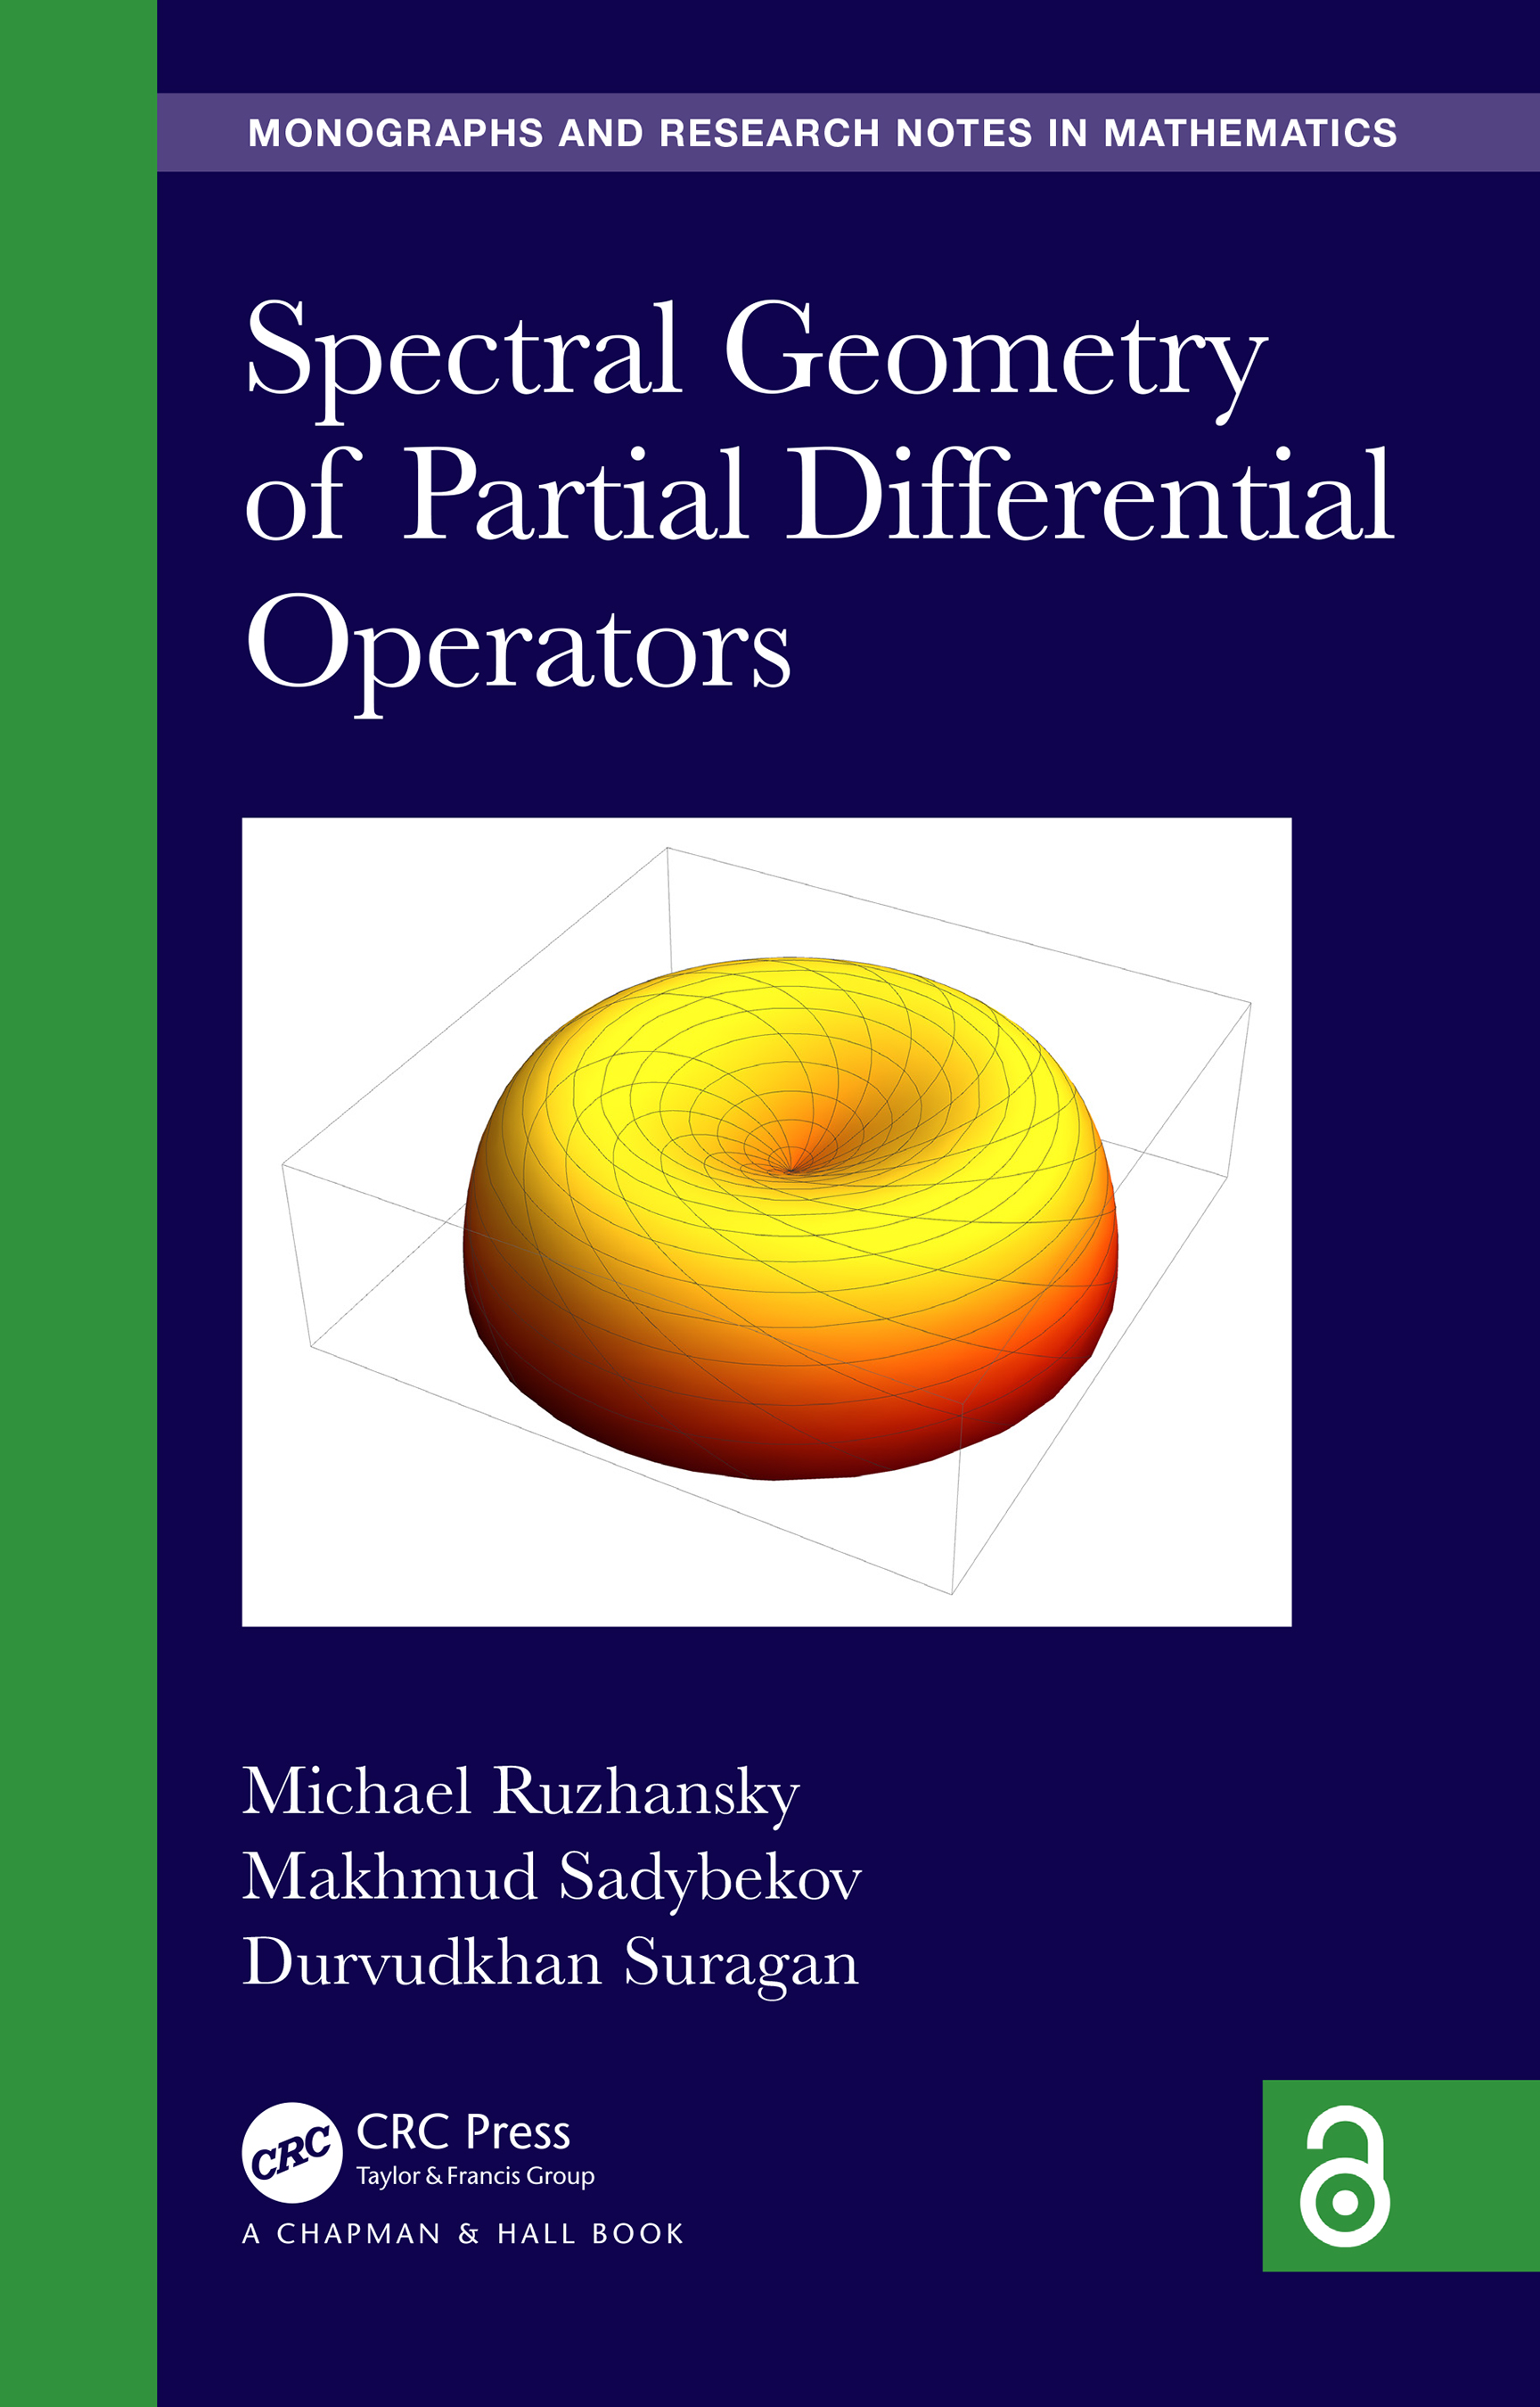 Spectral Geometry of Partial Differential Operators book cover